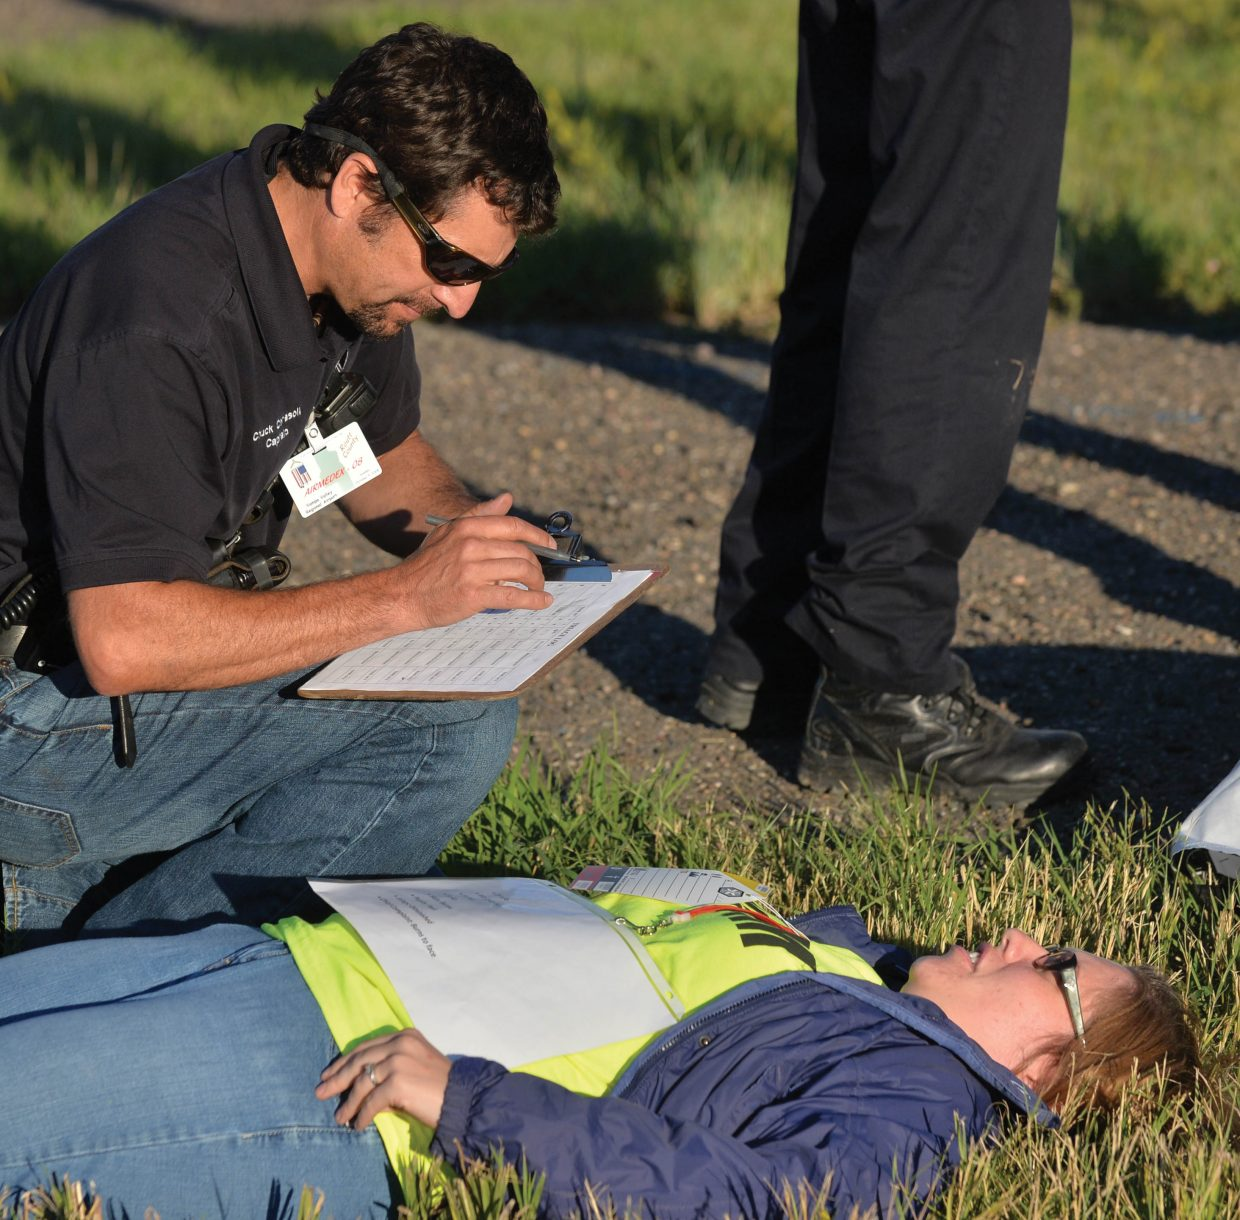 """Emergency responder Chuck Cerasoli checks on a """"victim"""" during a mass casualty drill at the Yampa Valley Regional Airport on Wednesday evening. The drill, which takes place once every three years, allows agencies from Oak Creek, Steamboat Springs, Hayden and Craig to run through procedures as though a commuter plane had crashed at the airport. The drill is designed to test procedures that are already in place, and give agencies a chance to practice the scenario as if a disaster had taken place."""